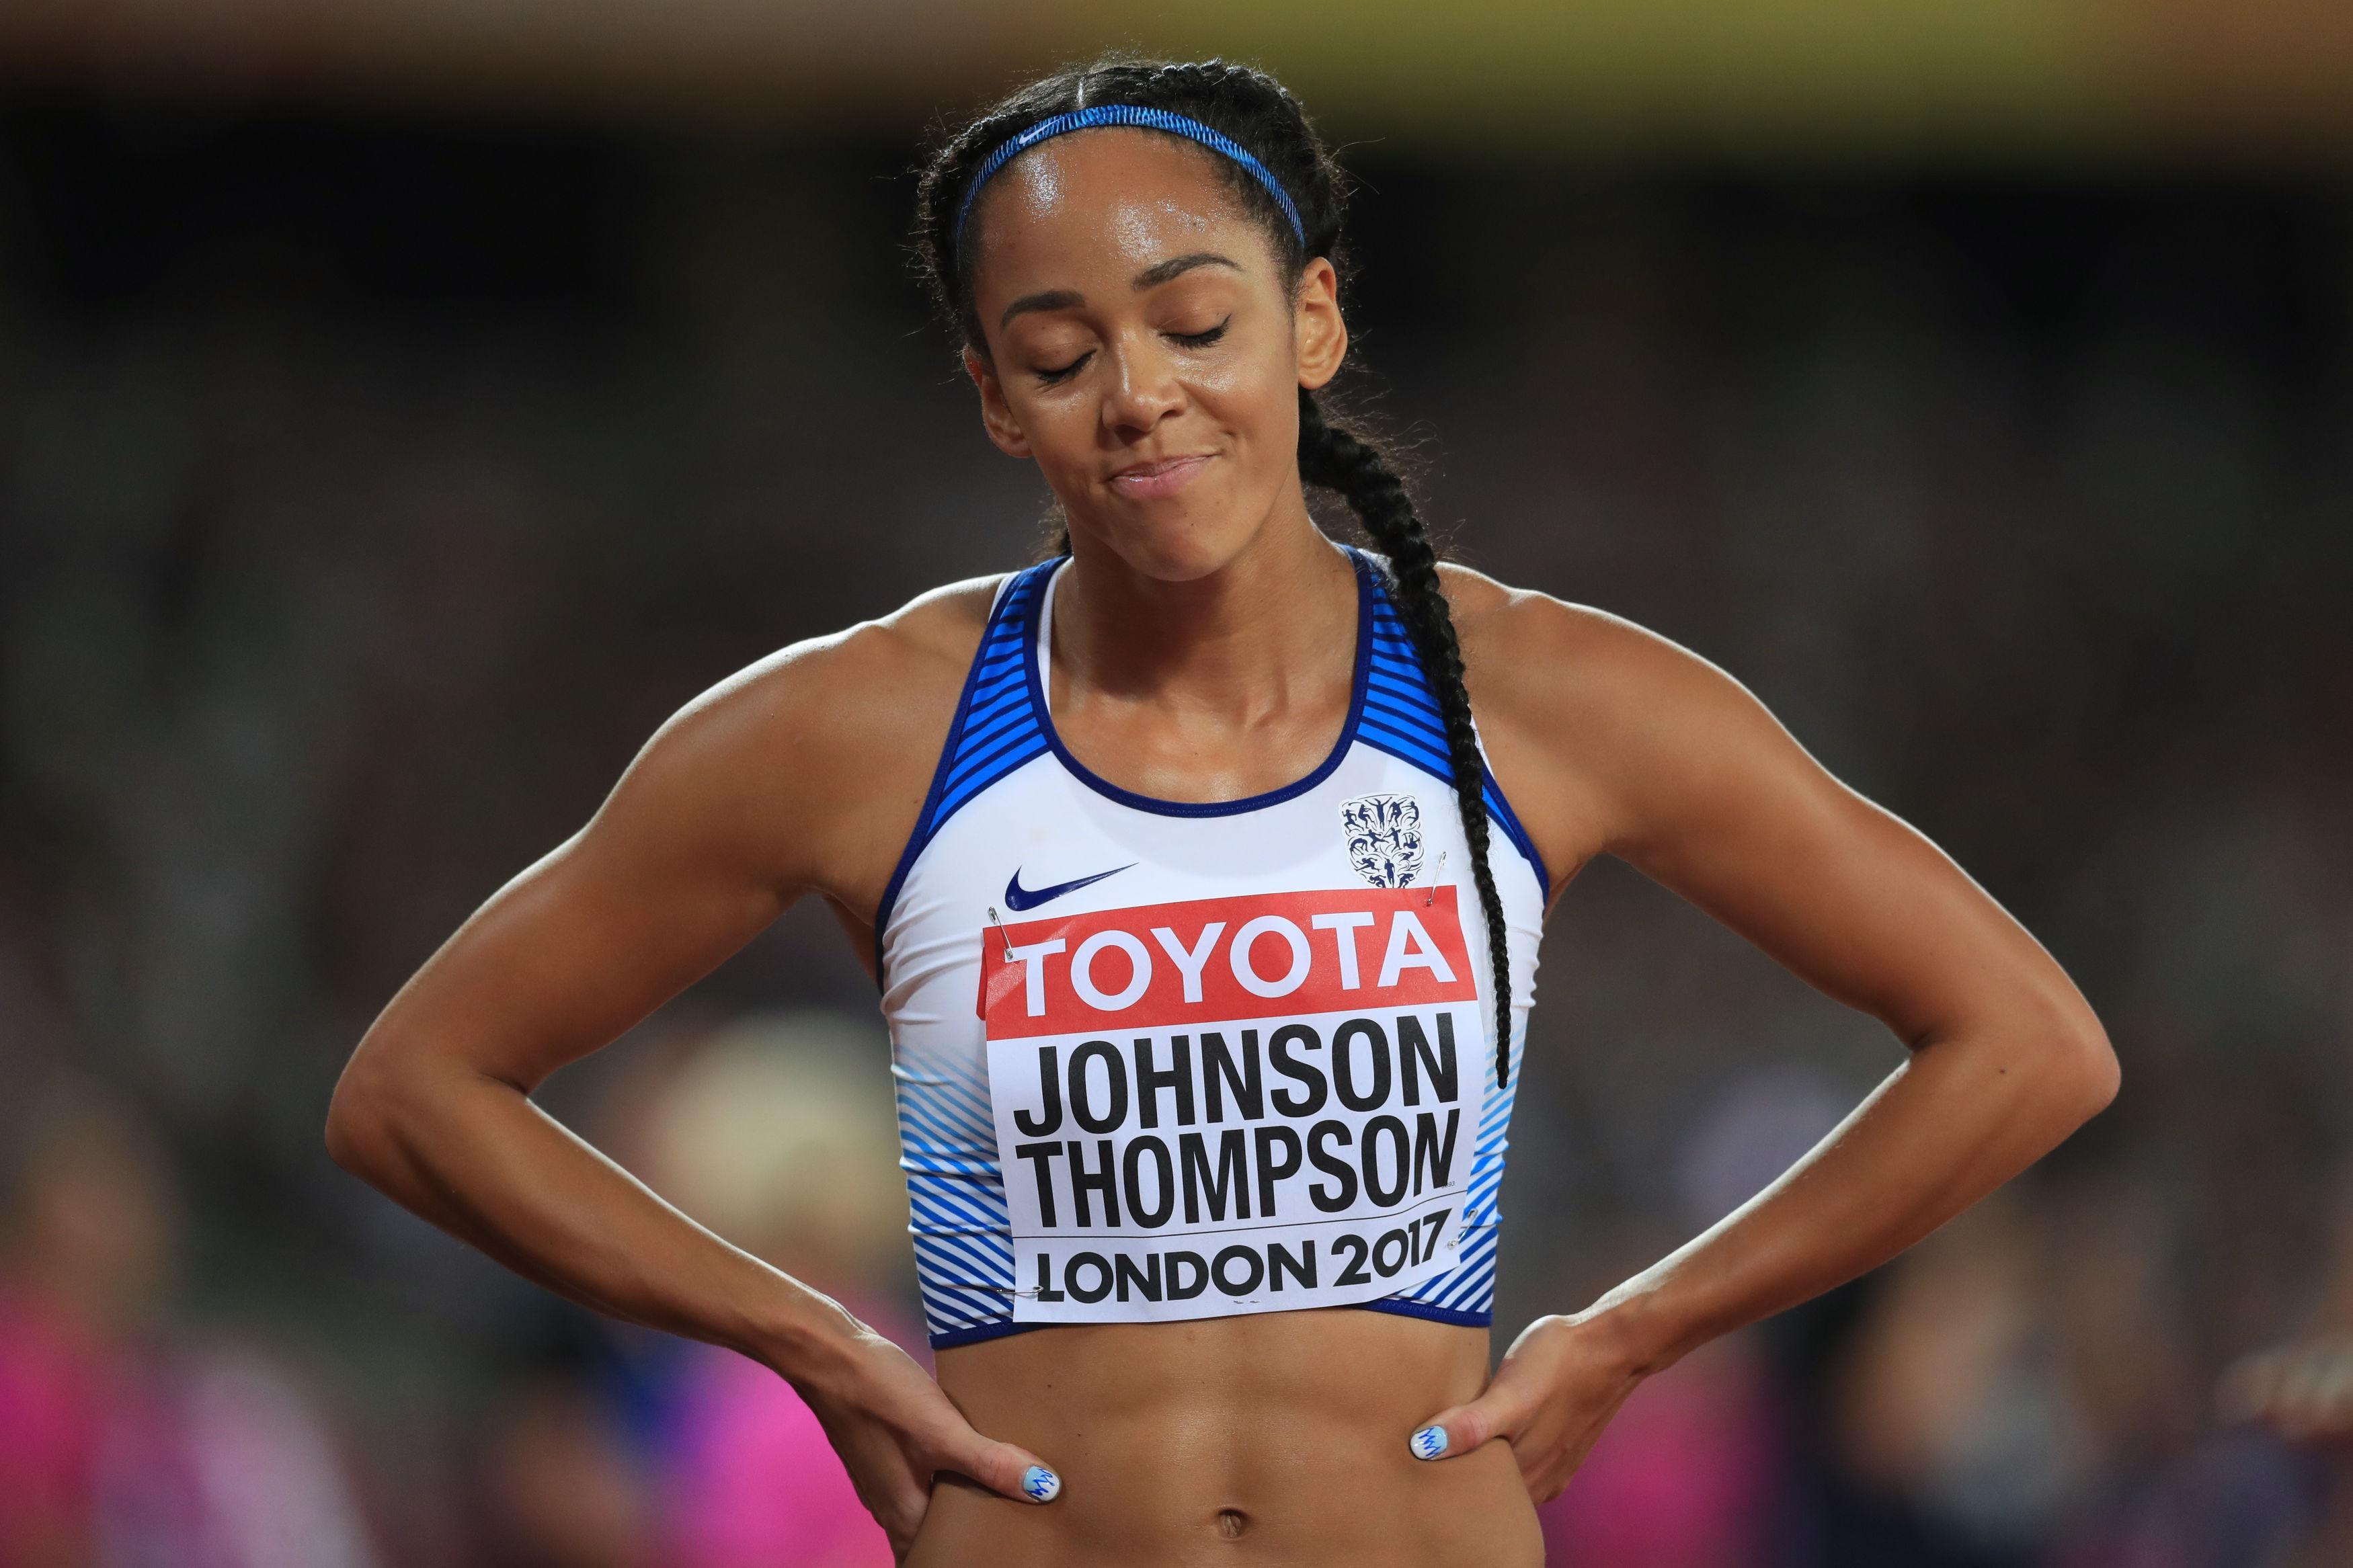 Katarina Johnson-Thompson was left to rue her flop in the high jump after missing out on a medal